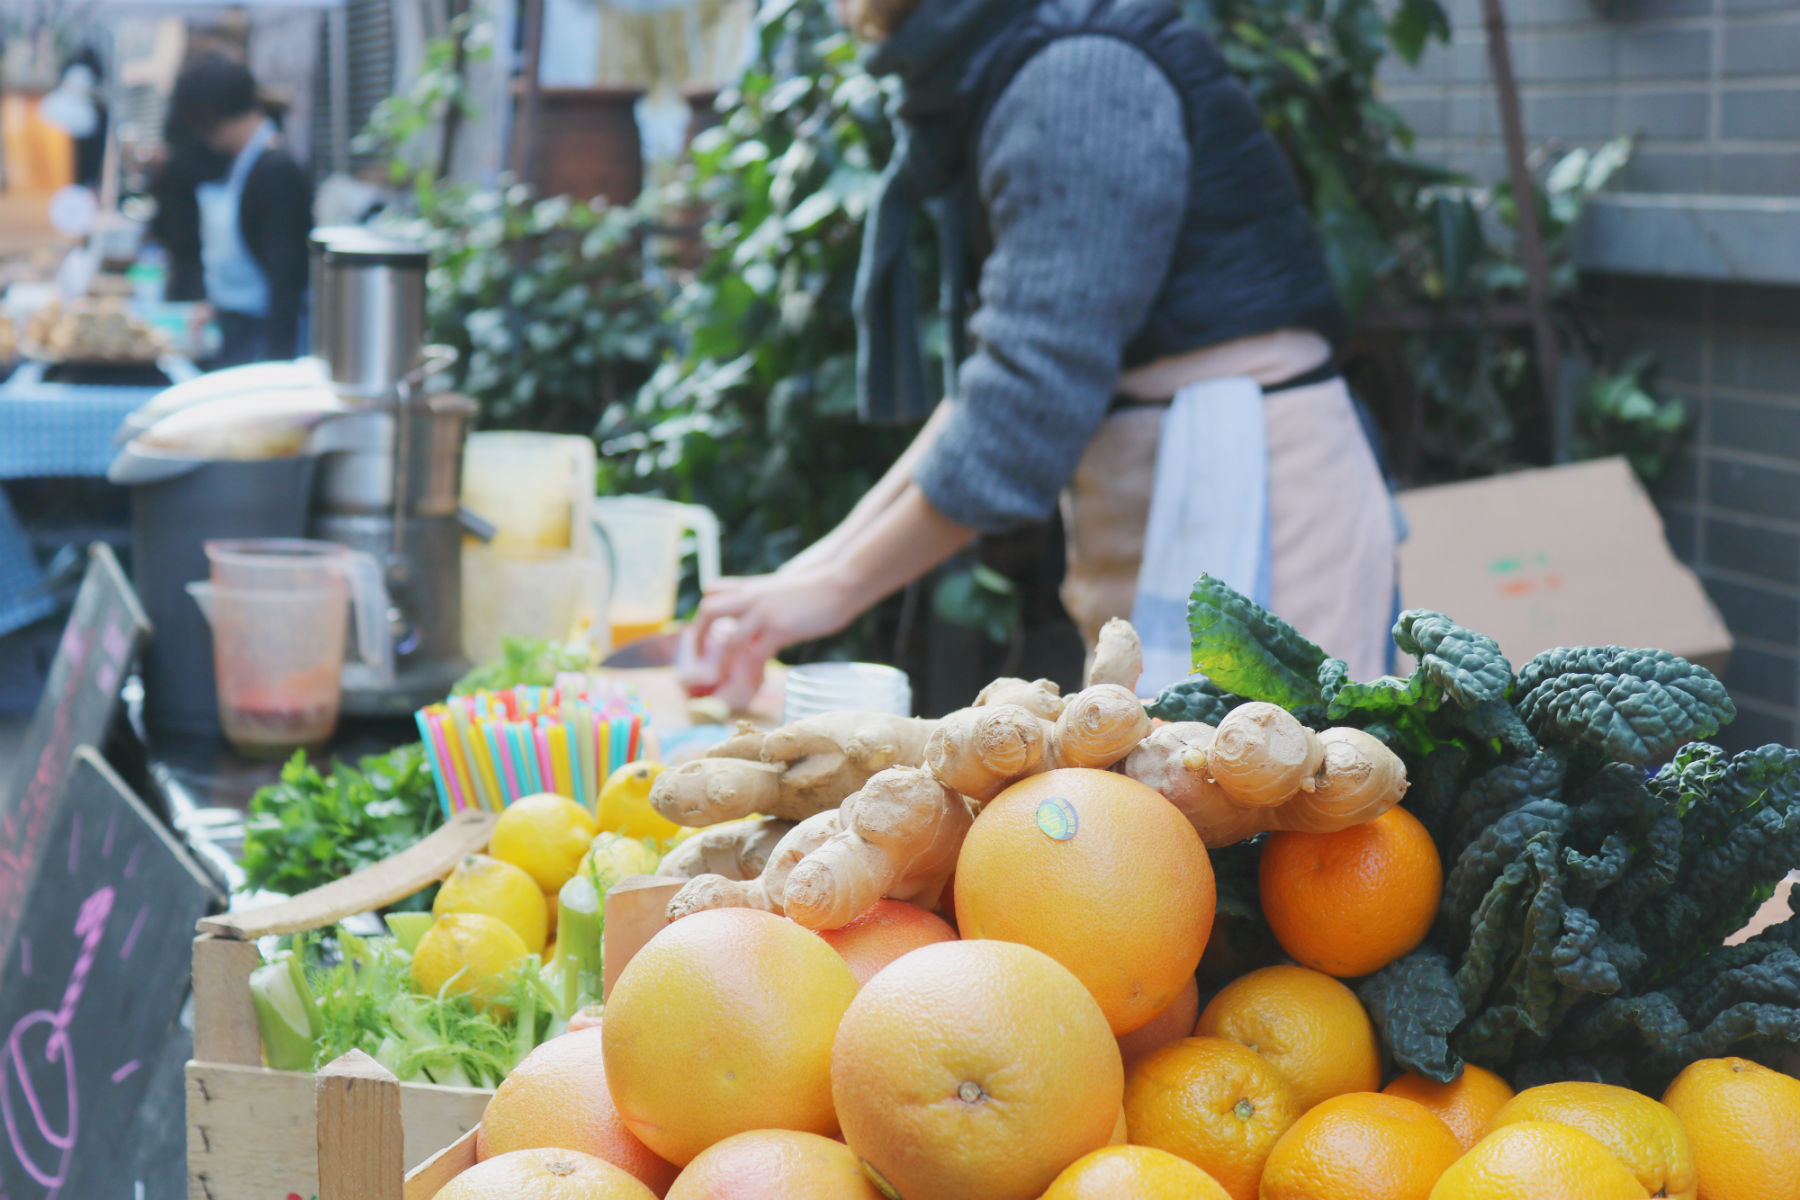 juice stall, Maltby street market